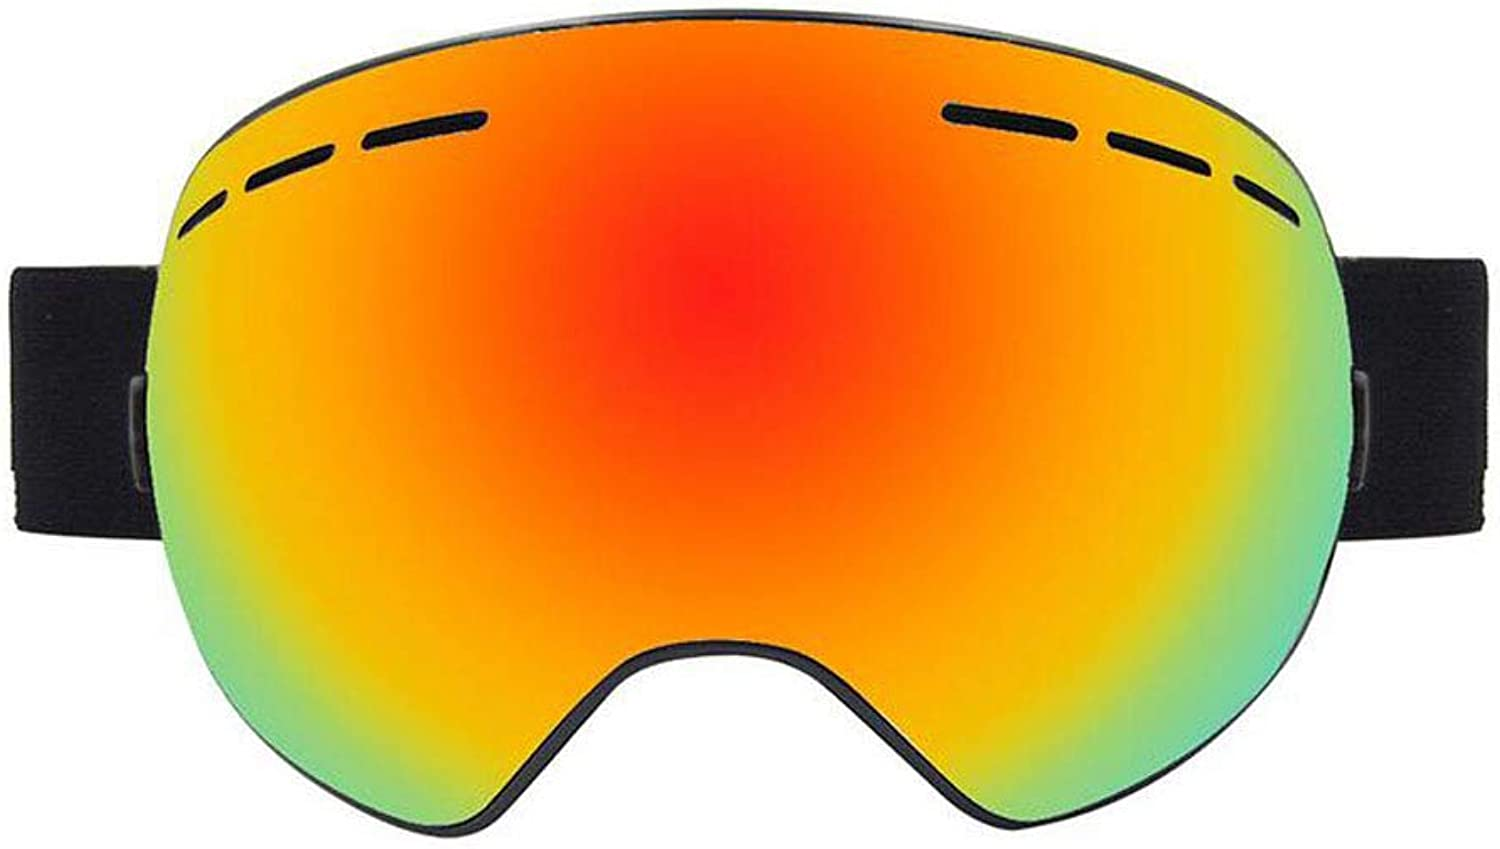 Ski Goggles, OTG Snowboard Goggles with Anti-Fog, UV400 UV Predection, Anti-Glare Ski Goggles, Suitable for Skiing, Snowboarding, Snowmobiling and Other Winter Sports (color   B)